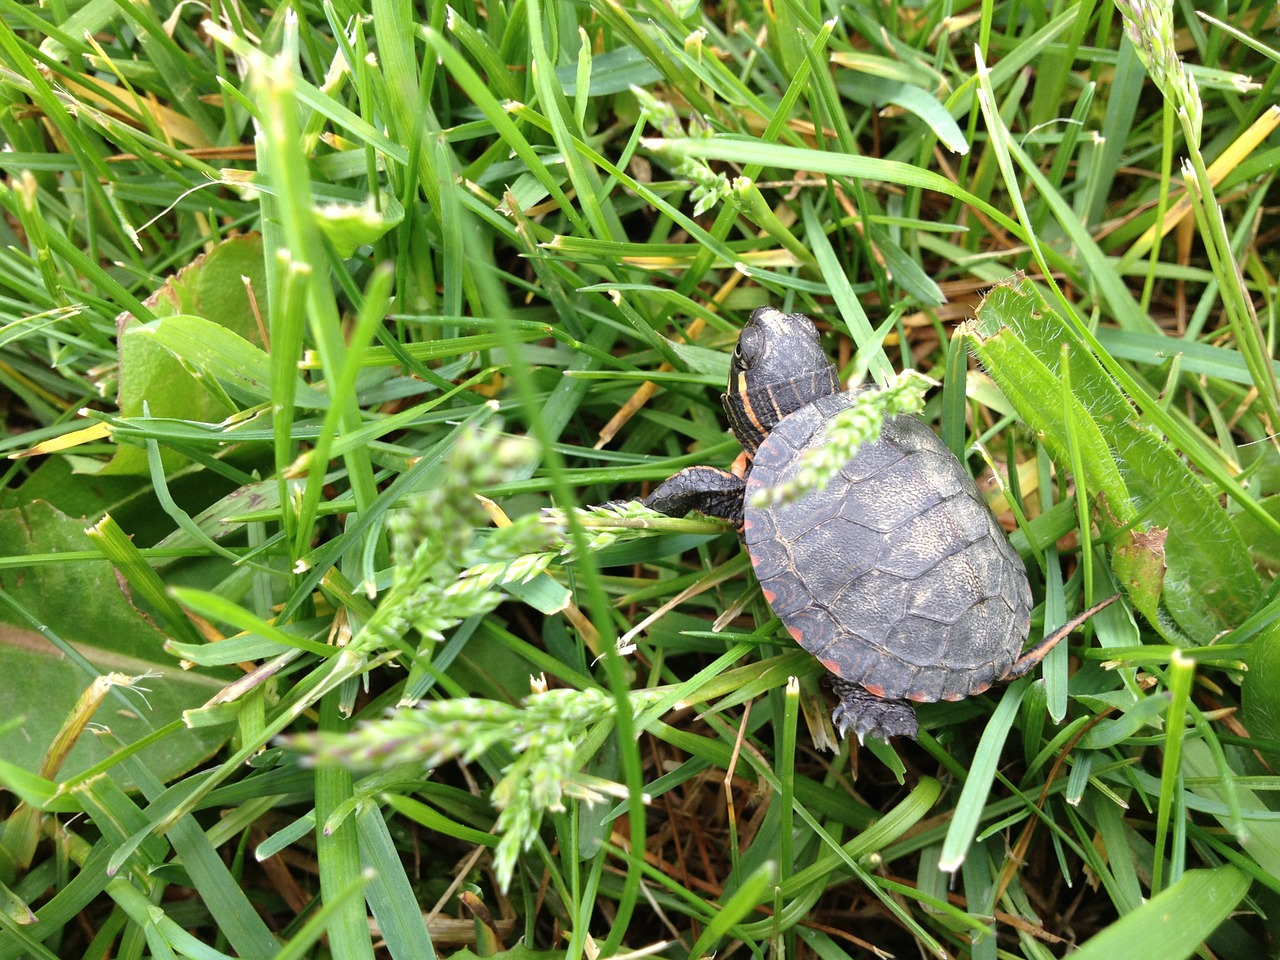 turtle,grass,baby,nature,wildlife,shell,green,life,cute,outdoor,wild,animal,free pictures, free photos, free images, royalty free, free illustrations, public domain